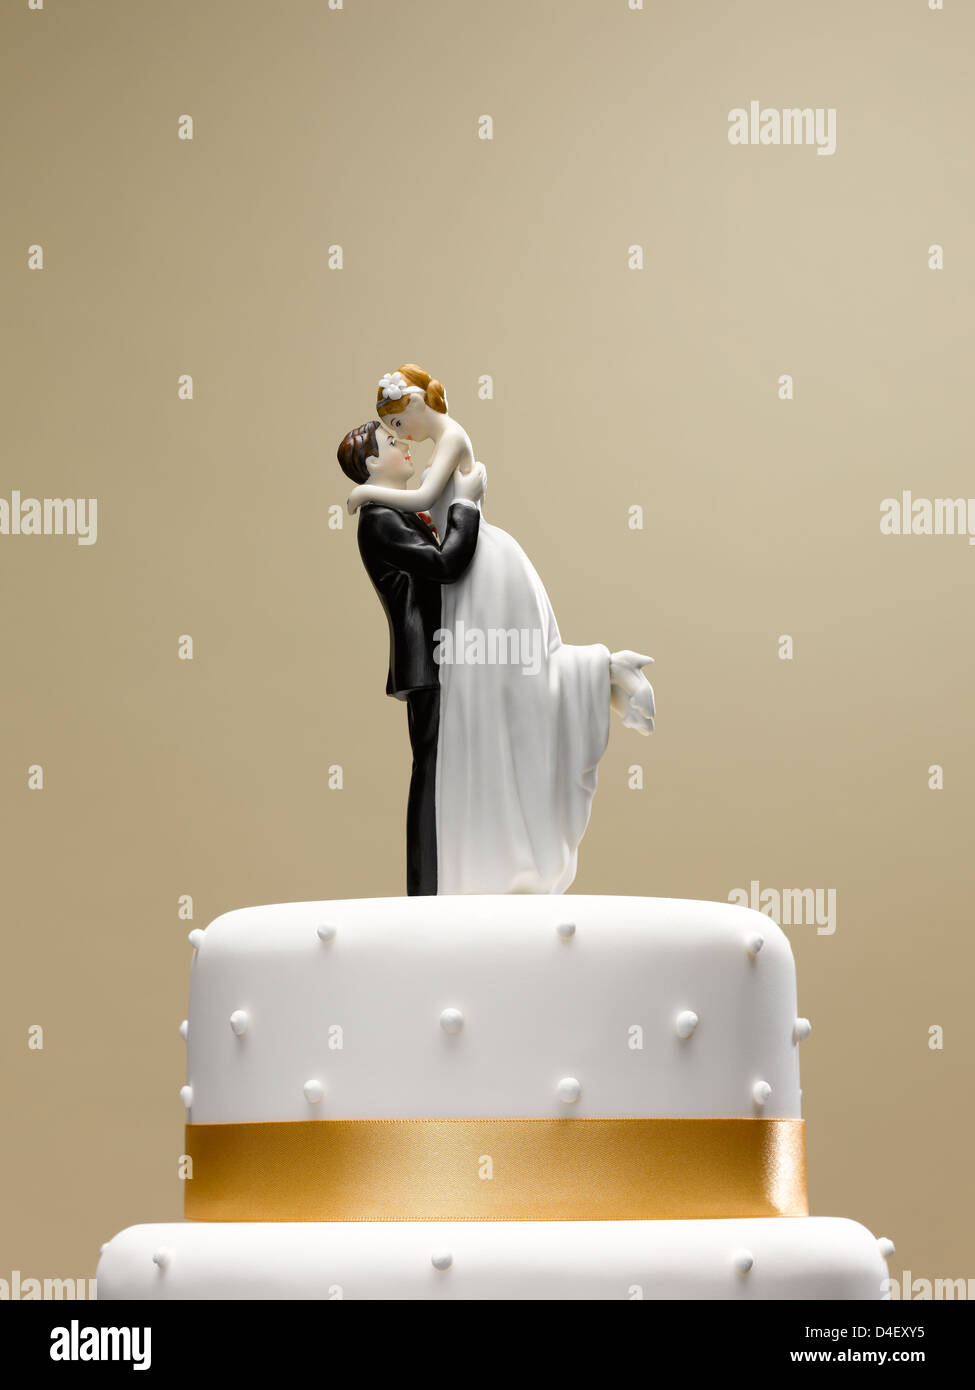 Cake Topper Stock Photos & Cake Topper Stock Images - Alamy